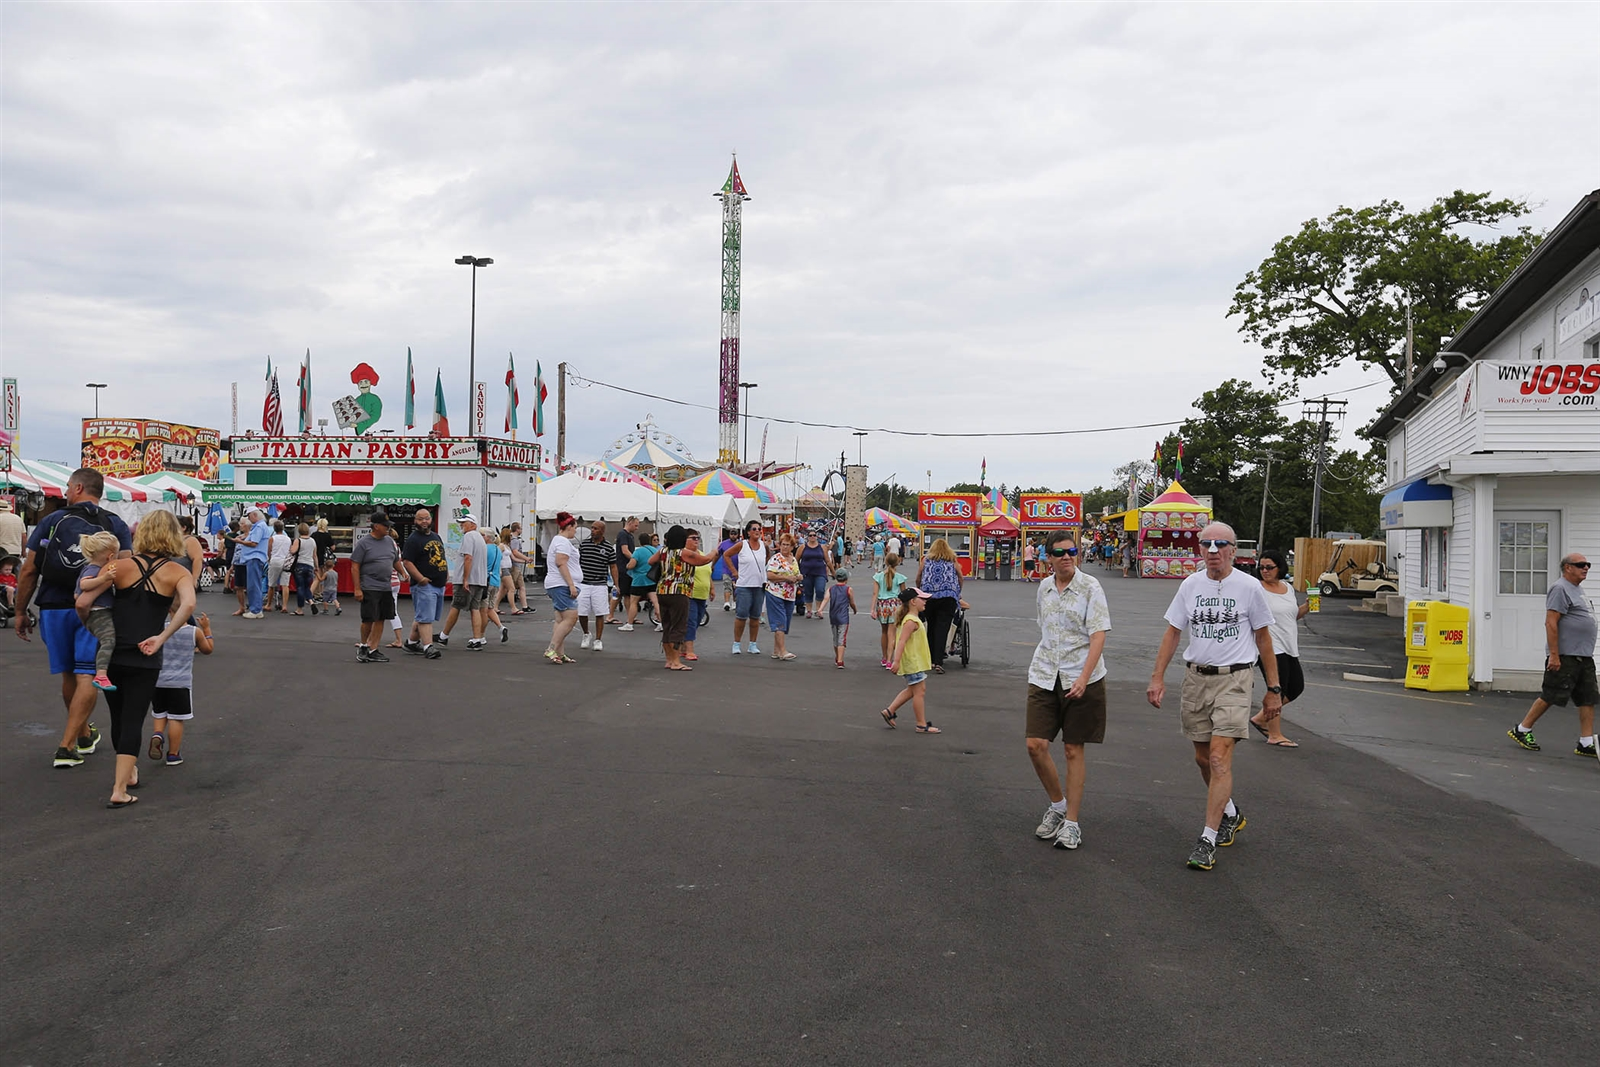 The Erie County Fair Midway on Aug. 15, 2016. The Erie County Fair set its attendance record in 2014 with a paid attendance of 1,220,101.